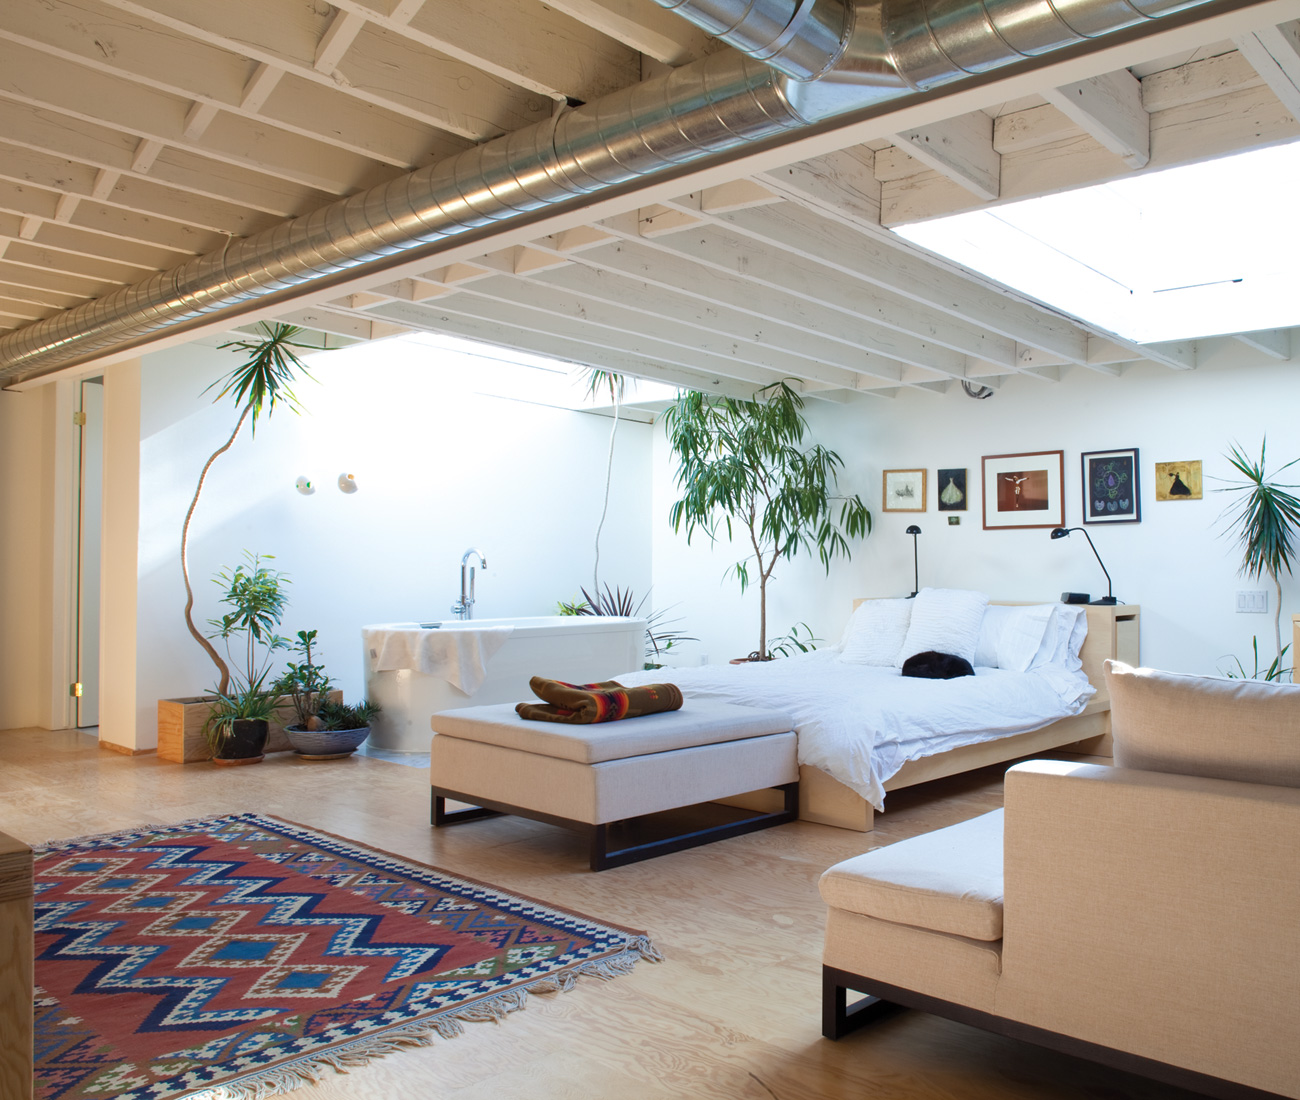 Though the palette is the same, the loft space – with its Douglas fir flooring, Neptune soaker tub and room-warming skylights – is clearly a work-free zone.